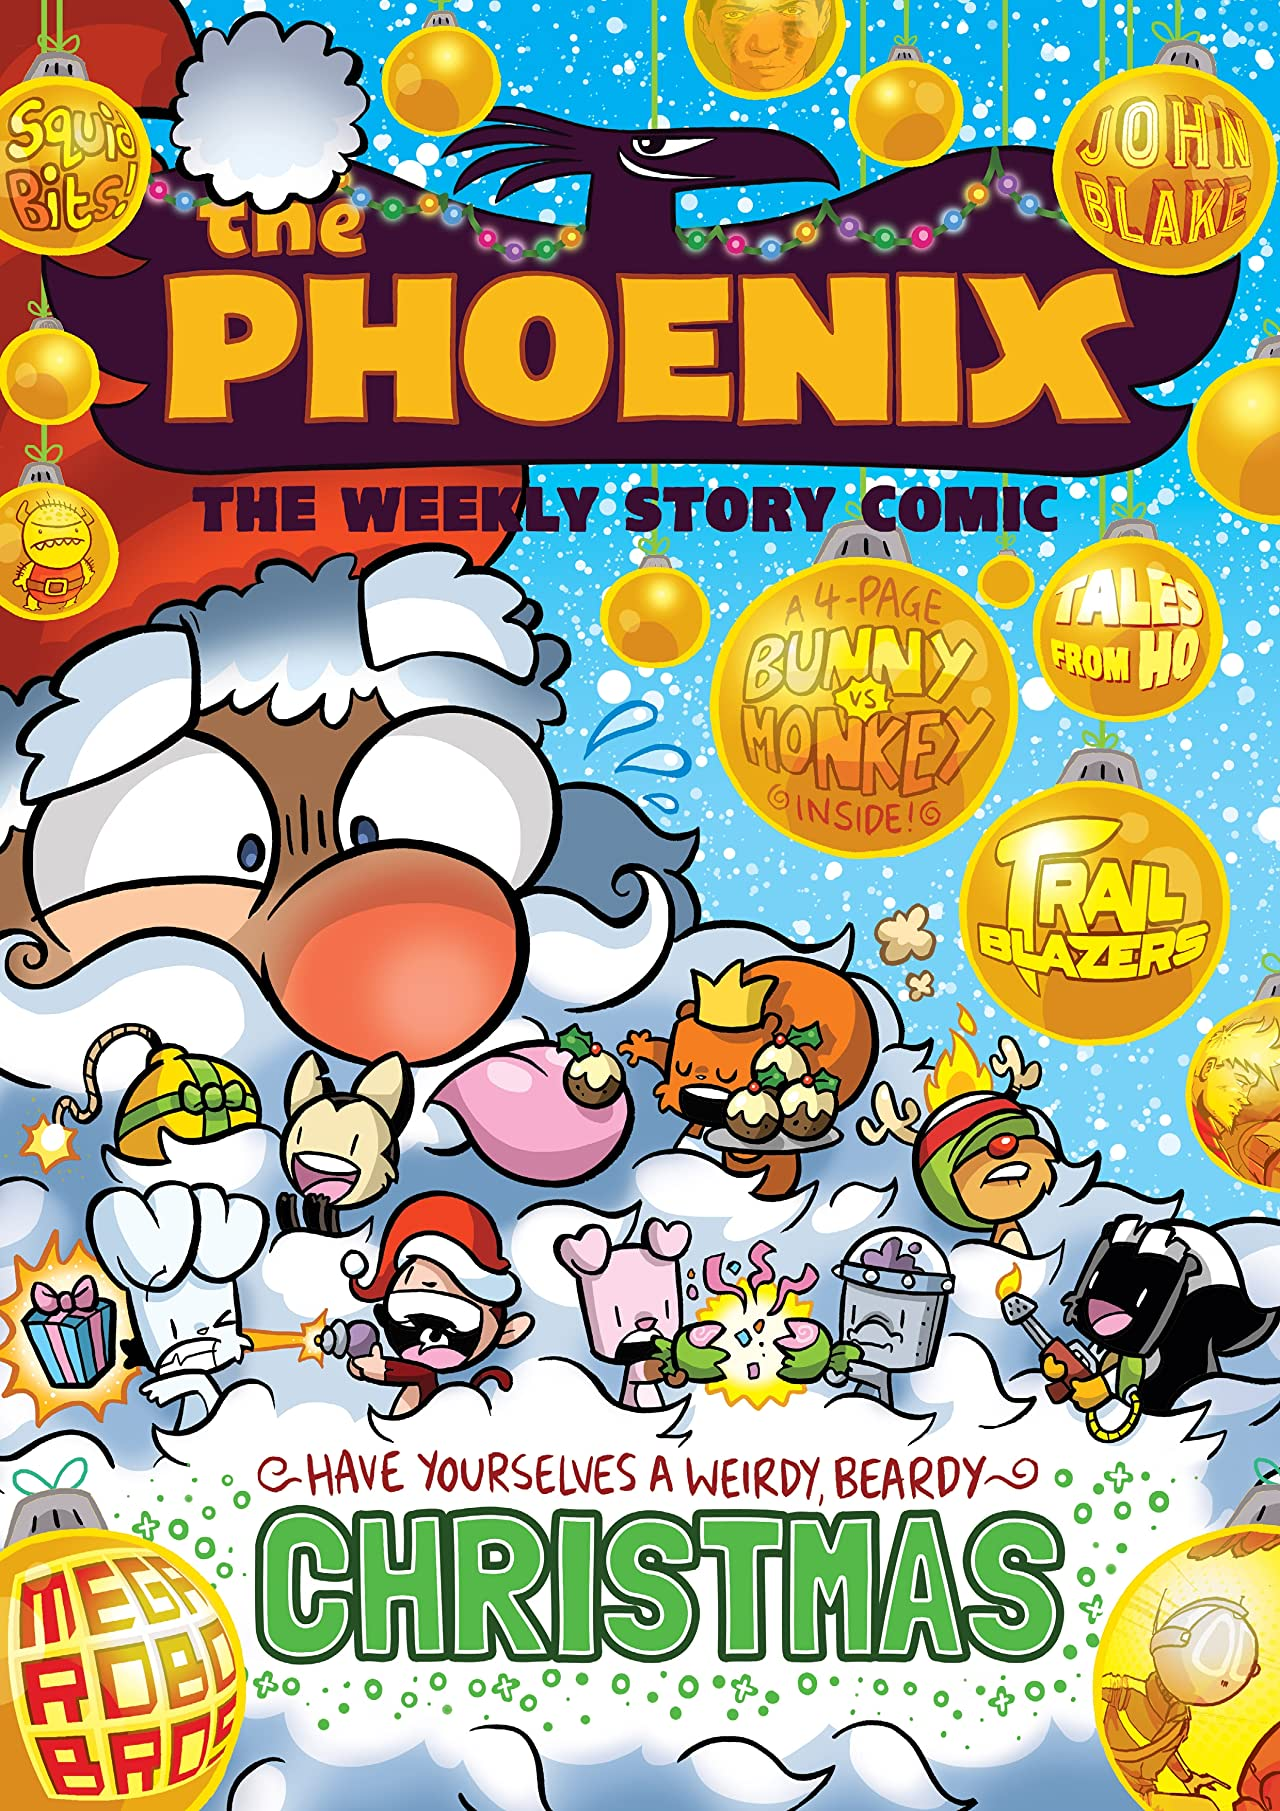 The Phoenix #260: The Weekly Story Comic